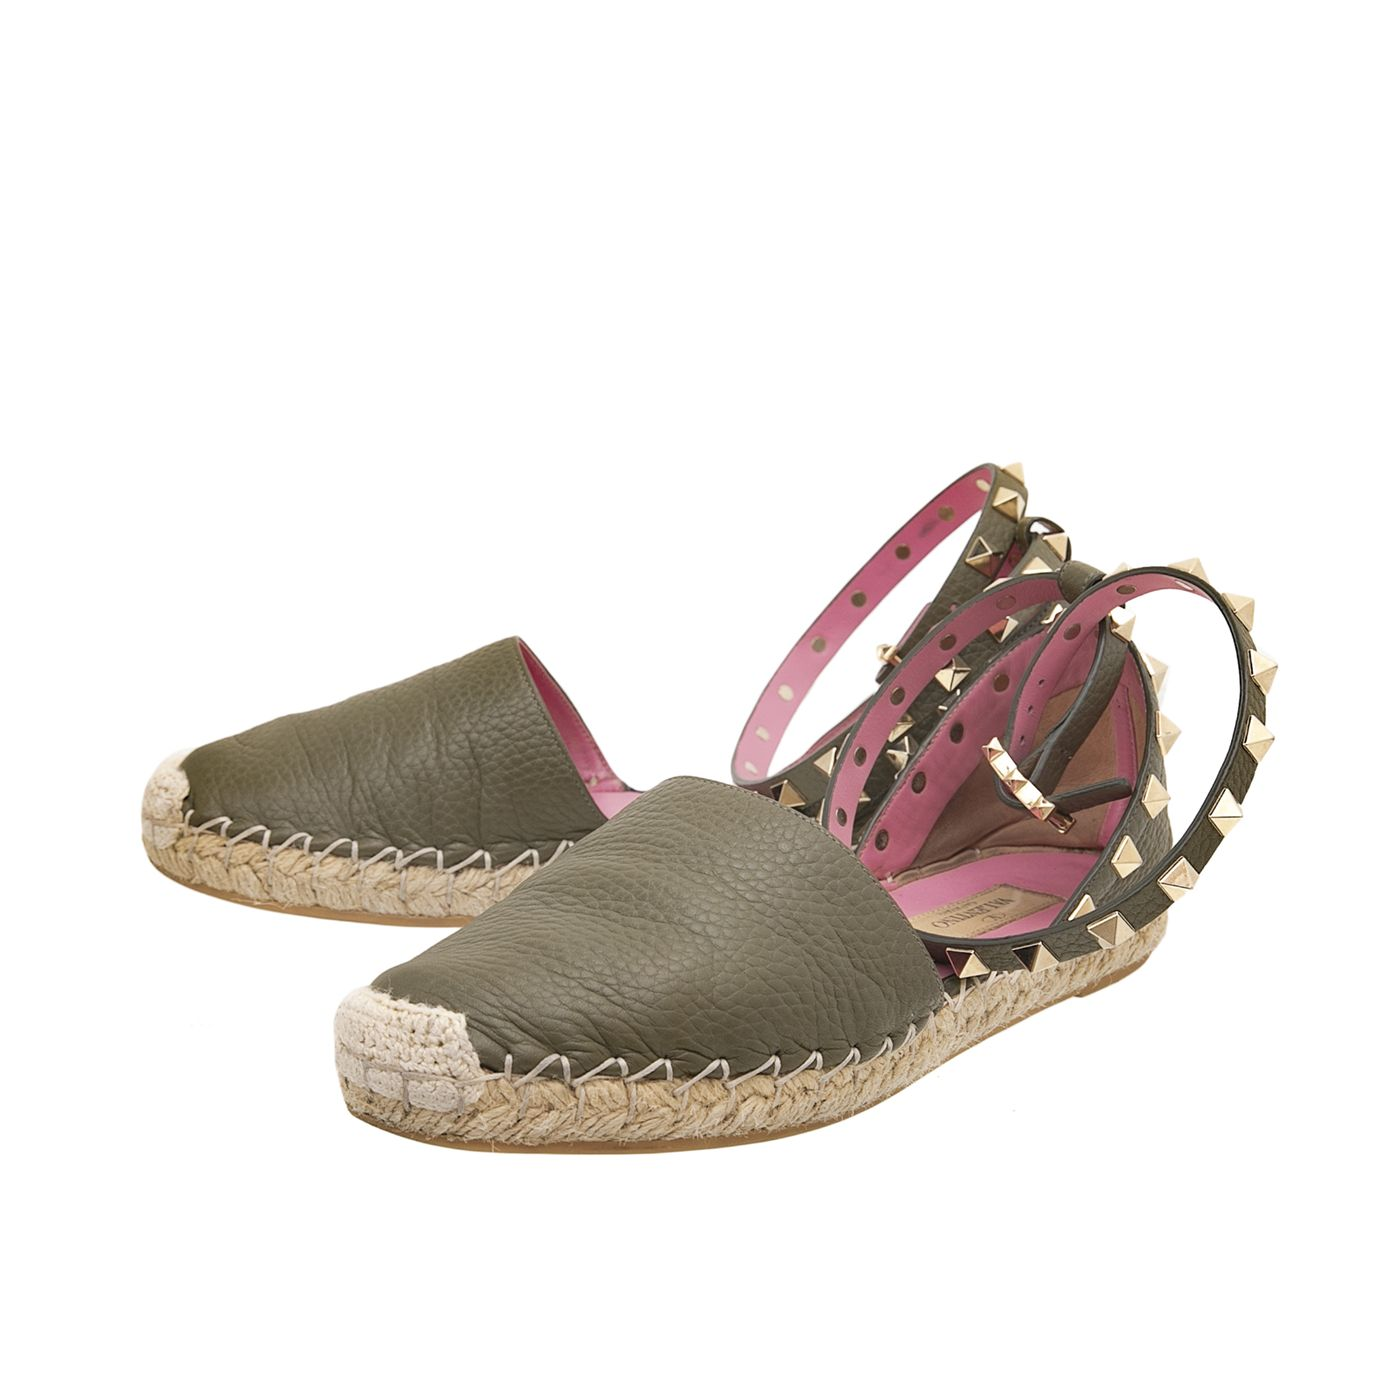 Valentino Olive Green Rockstud Double Ankle Strap Espadrille Flats 35